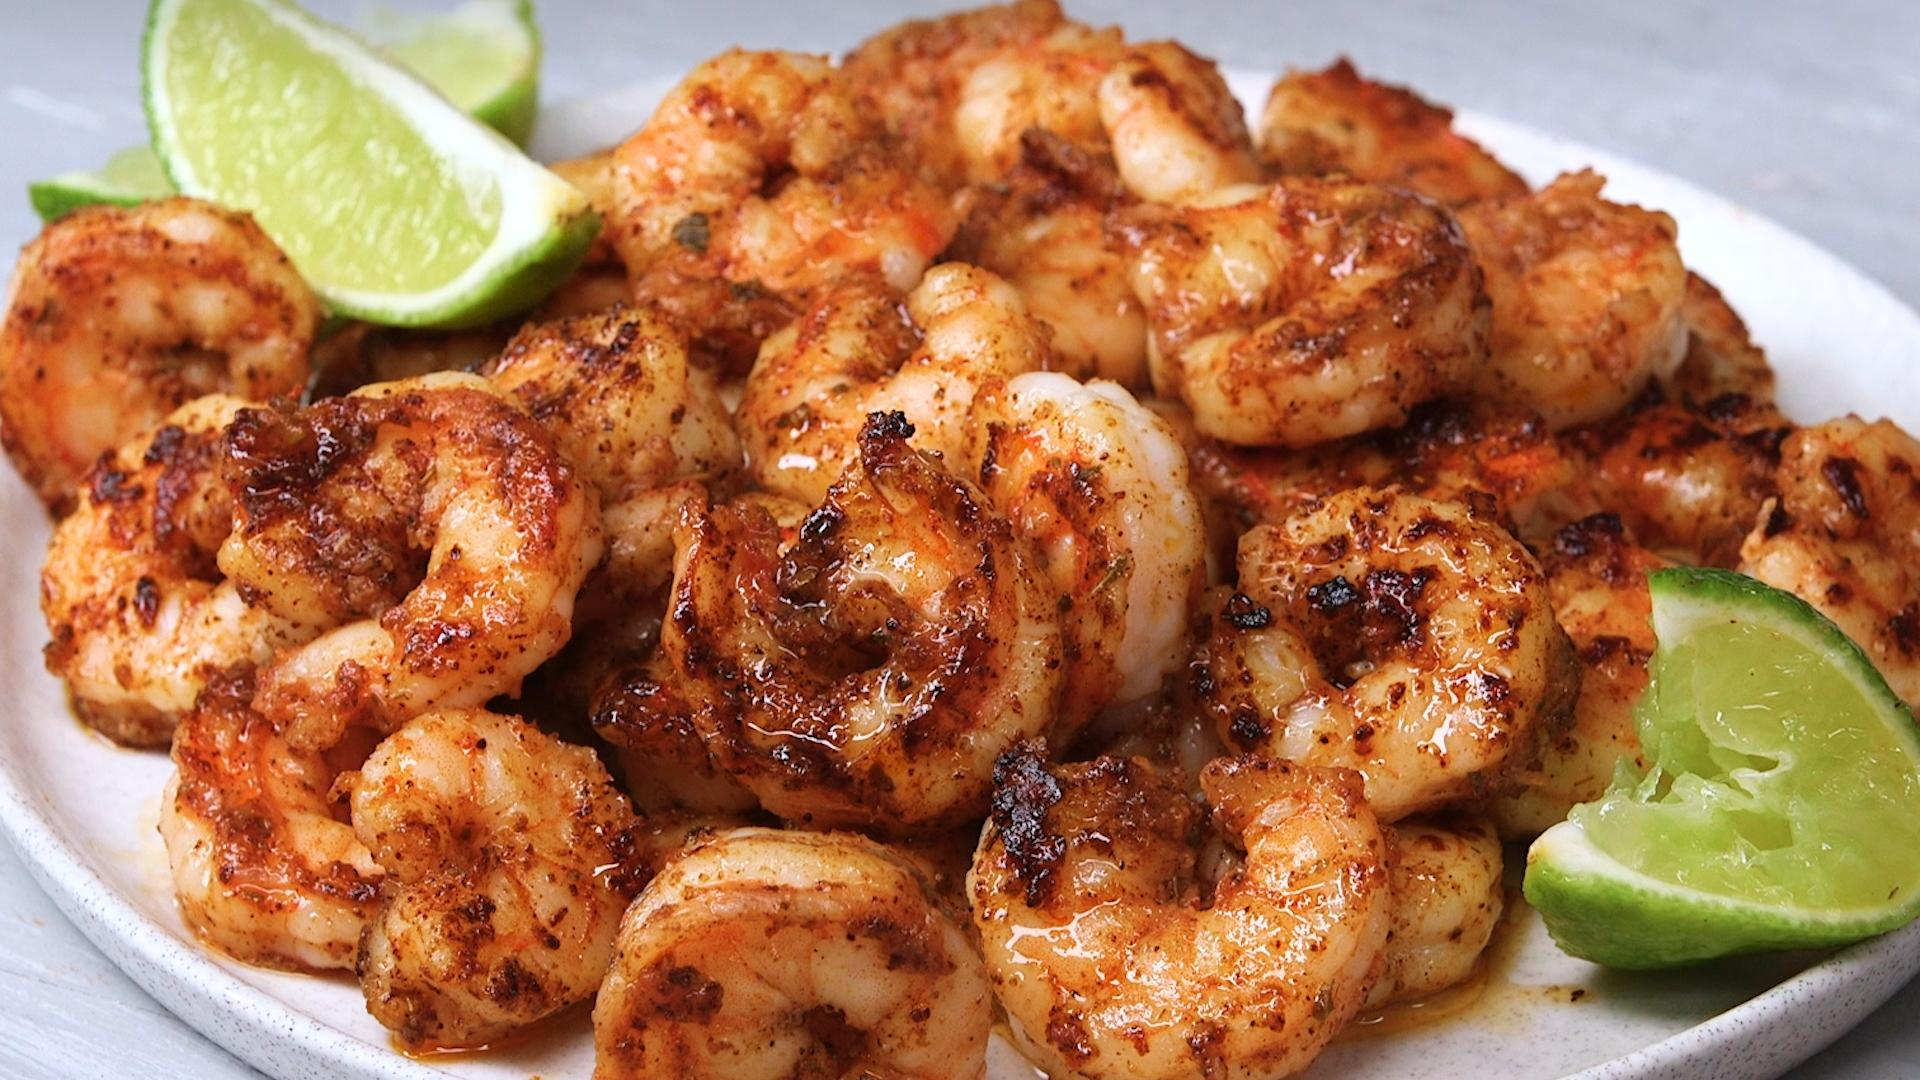 Spiced Shrimp with Avocado Oil Recipe